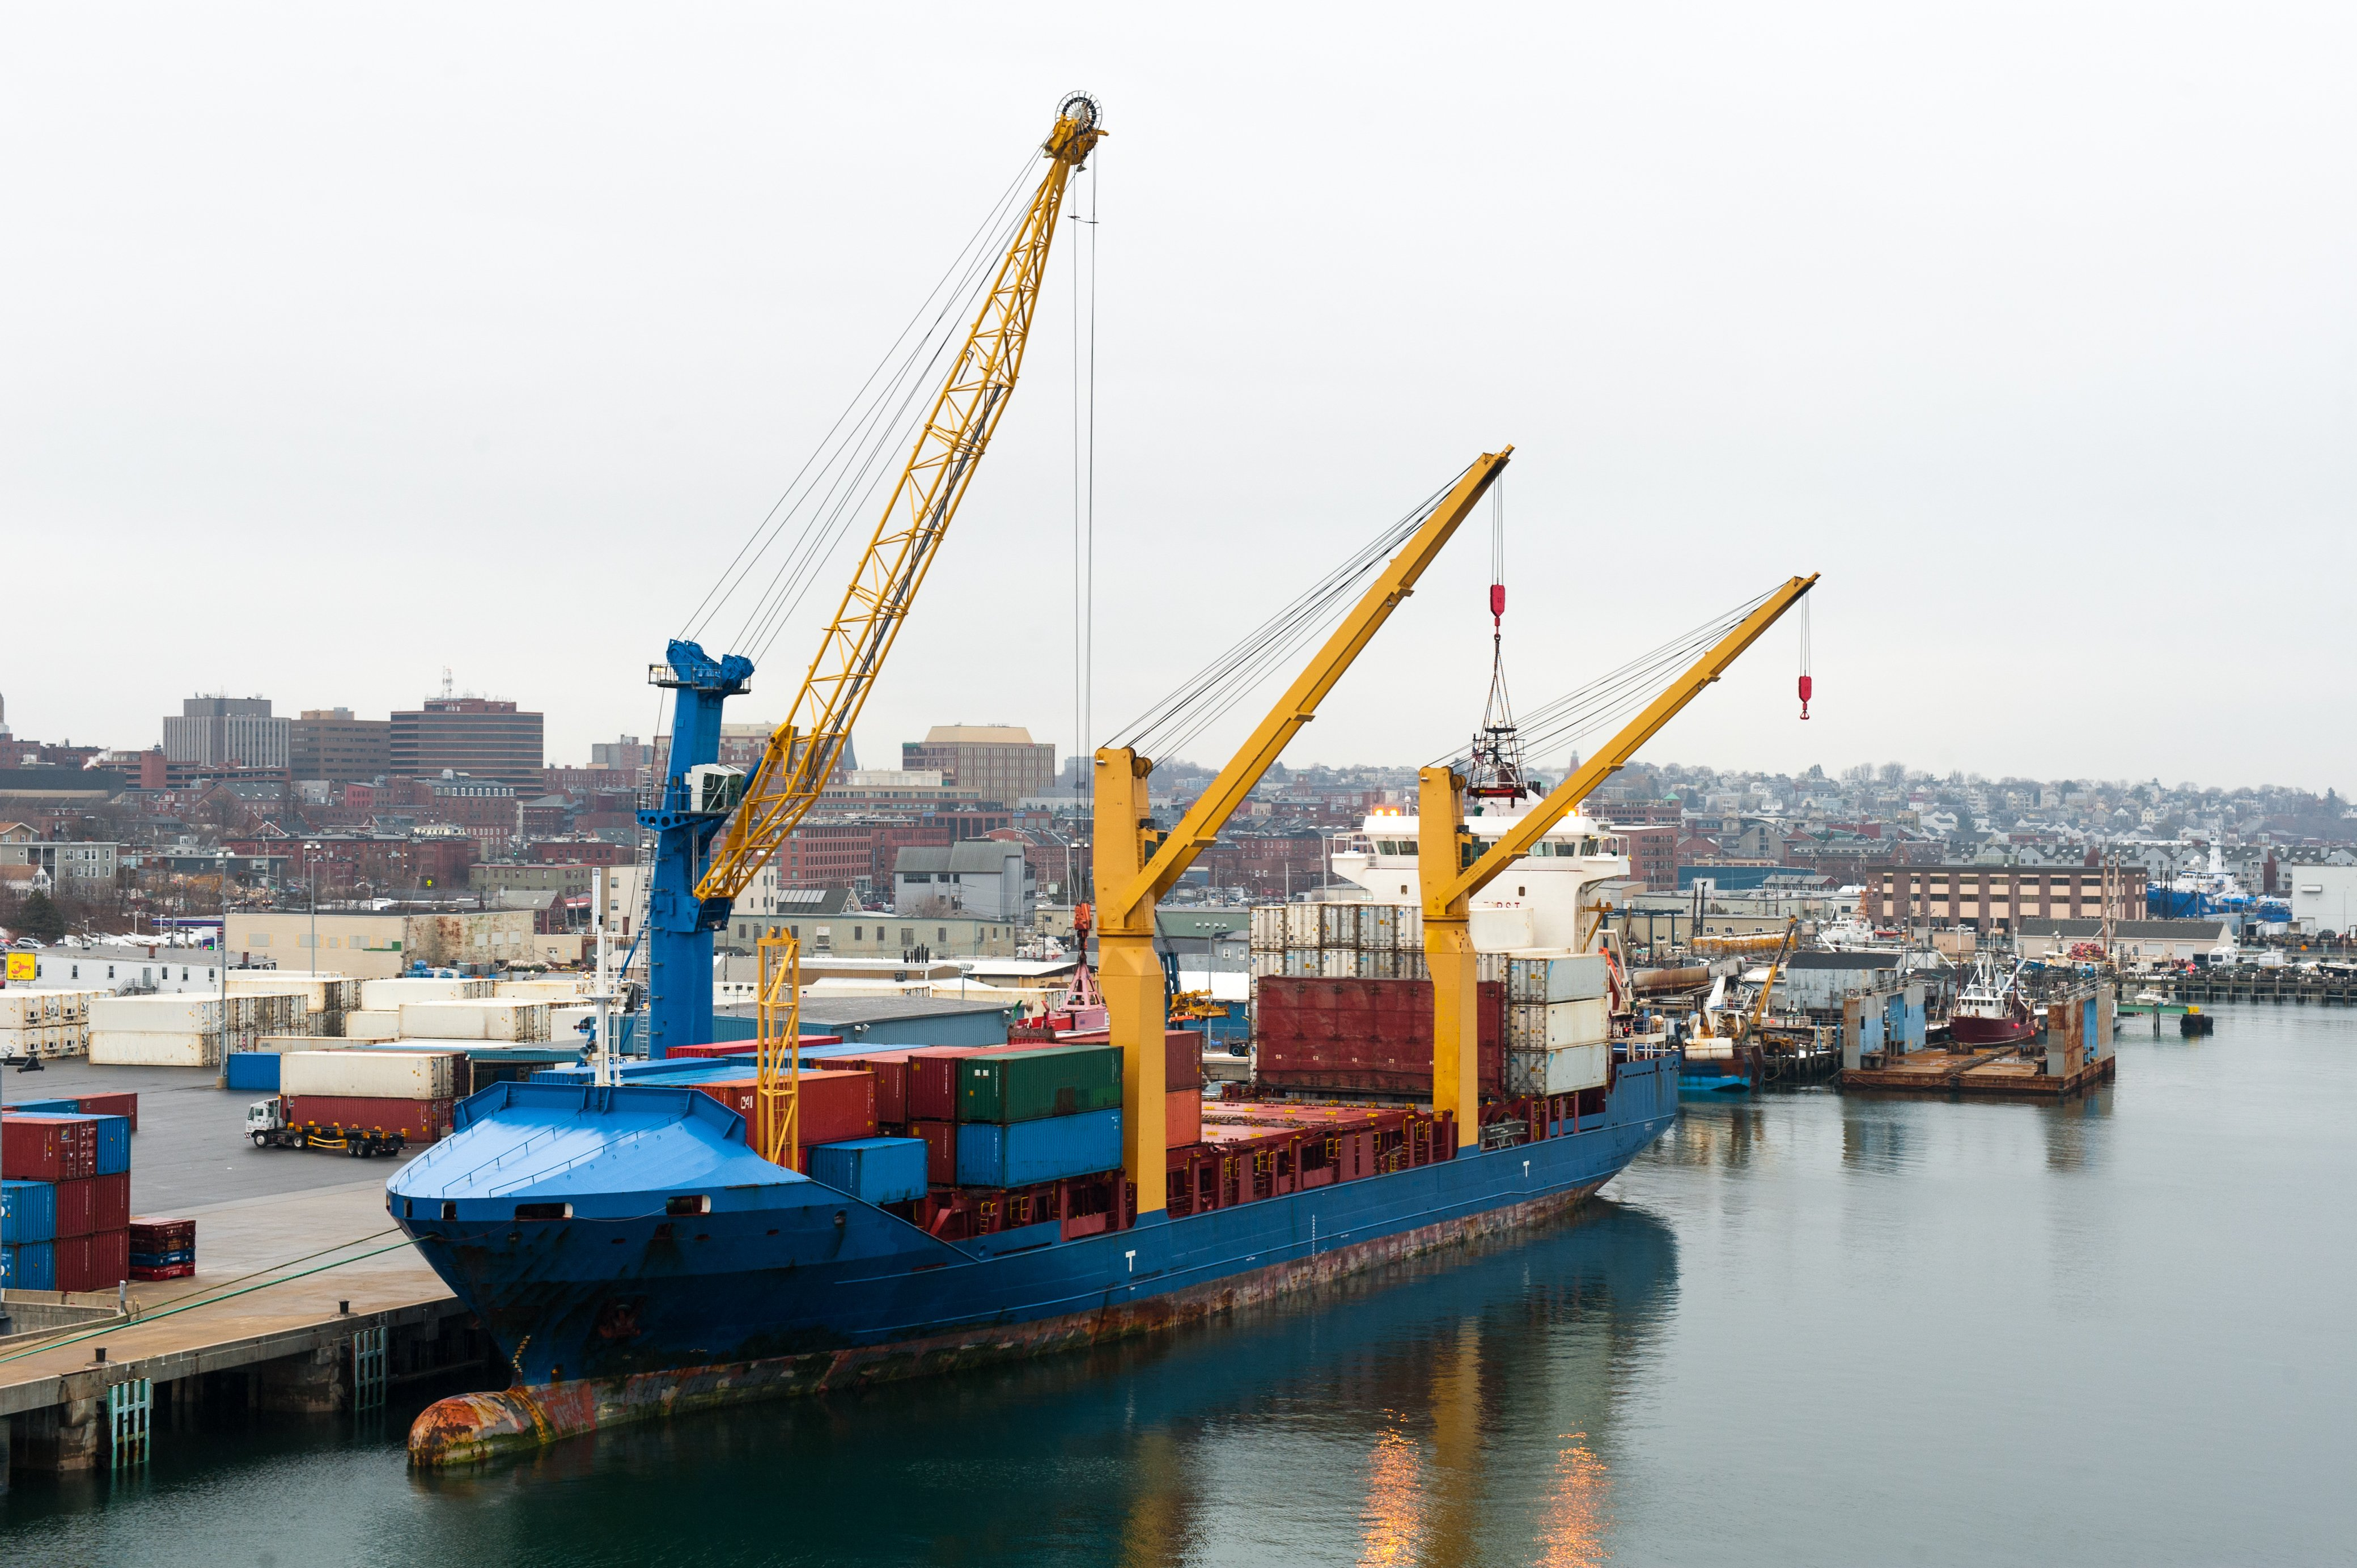 A container ship is loaded in at Portland, Maine. Portland hosts the only full Arctic Council meeting outside Alaska during the U.S. chairmanship of the council. (Thinkstock)